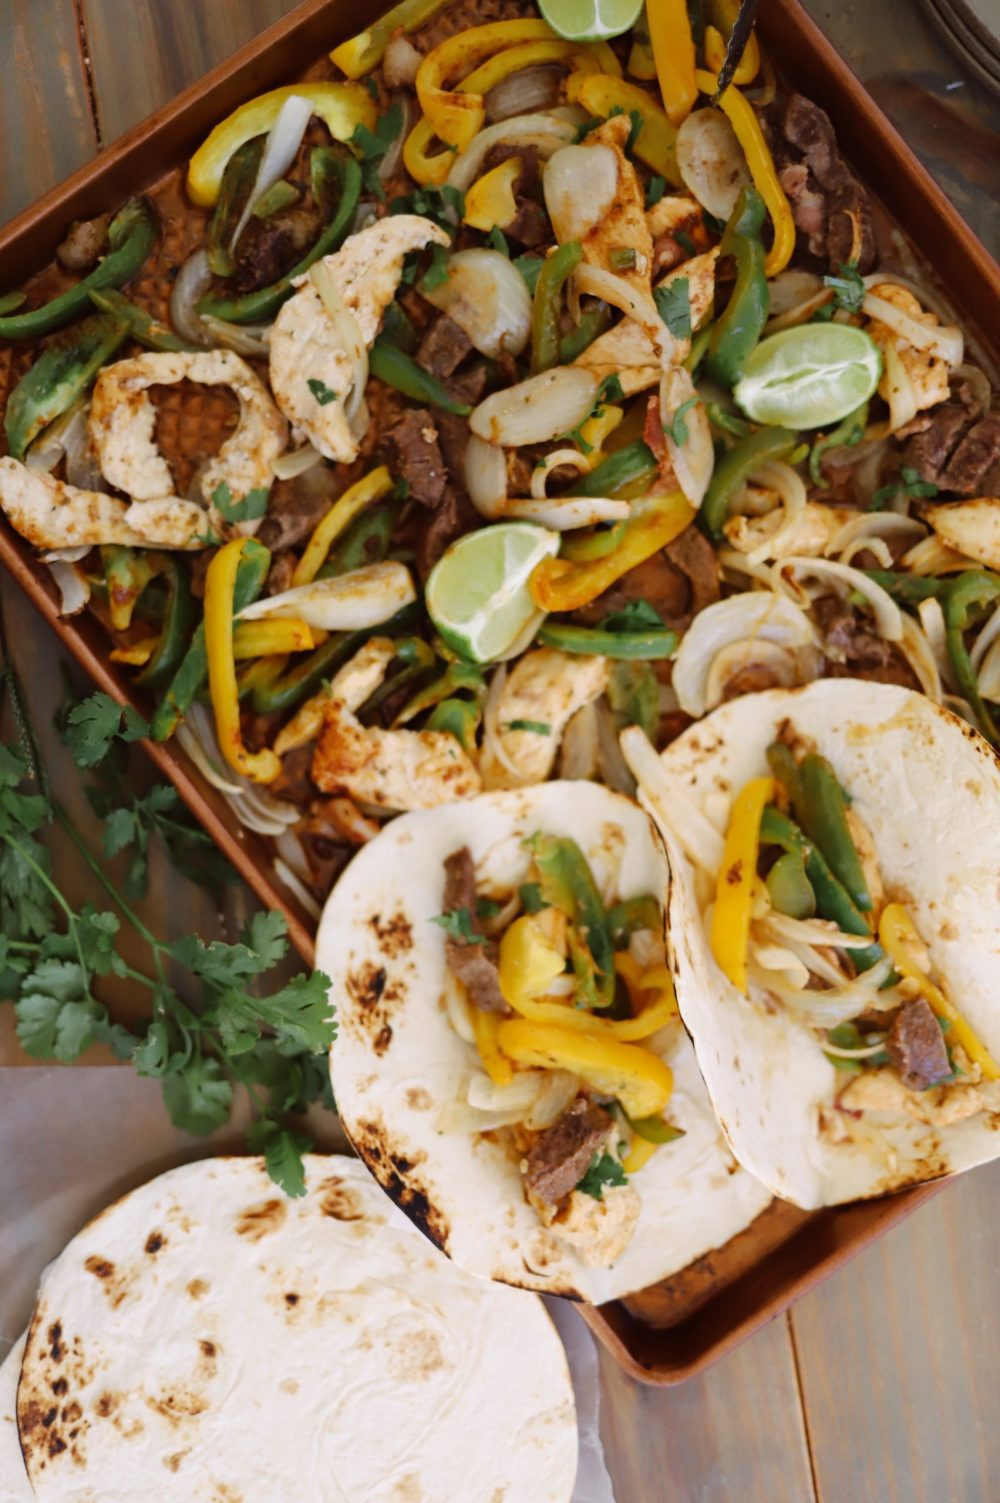 Dinner made easy and ALL IN ONE PAN with these steak and chicken sheet pan fajitas. Set it out on the table and serve with toppings to feed a big family easily!